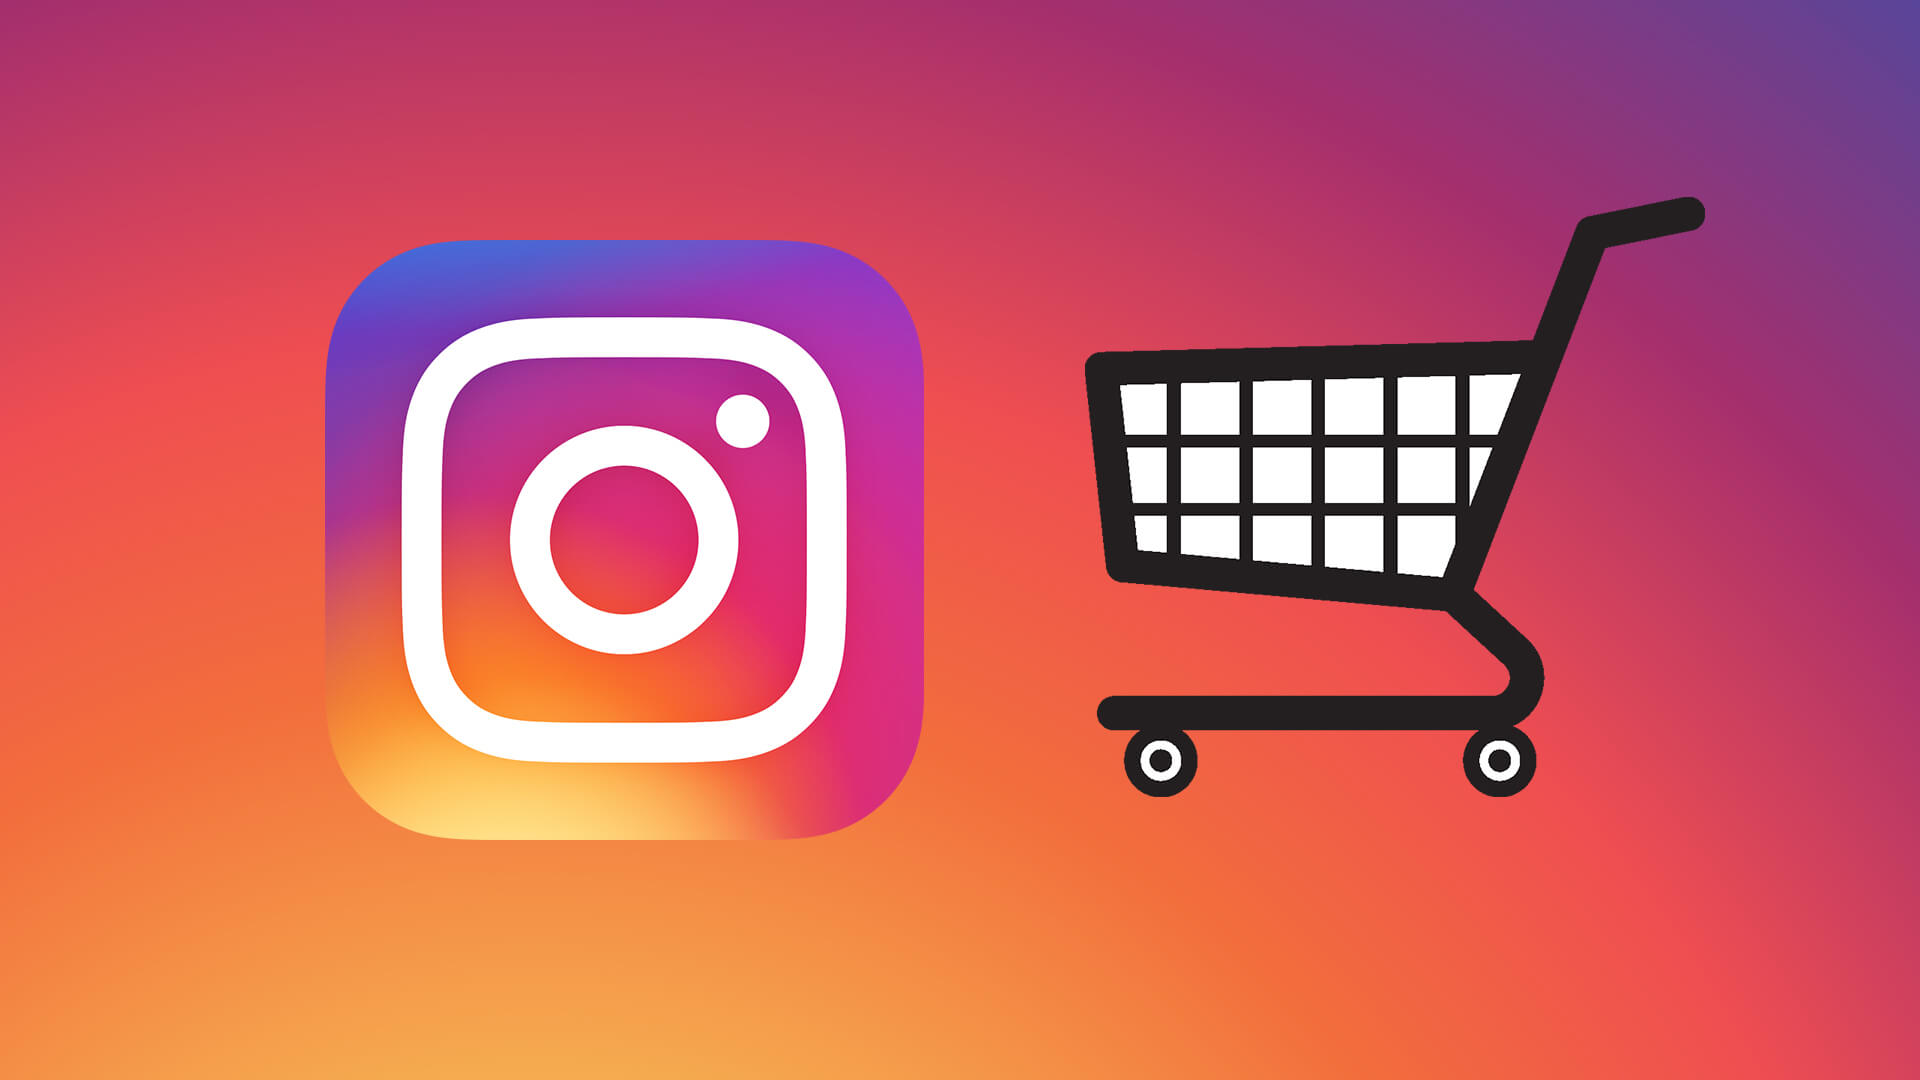 instagram ecommerce pinterest ecommerce online shopping social media influencer marketing in app purchases captiv8